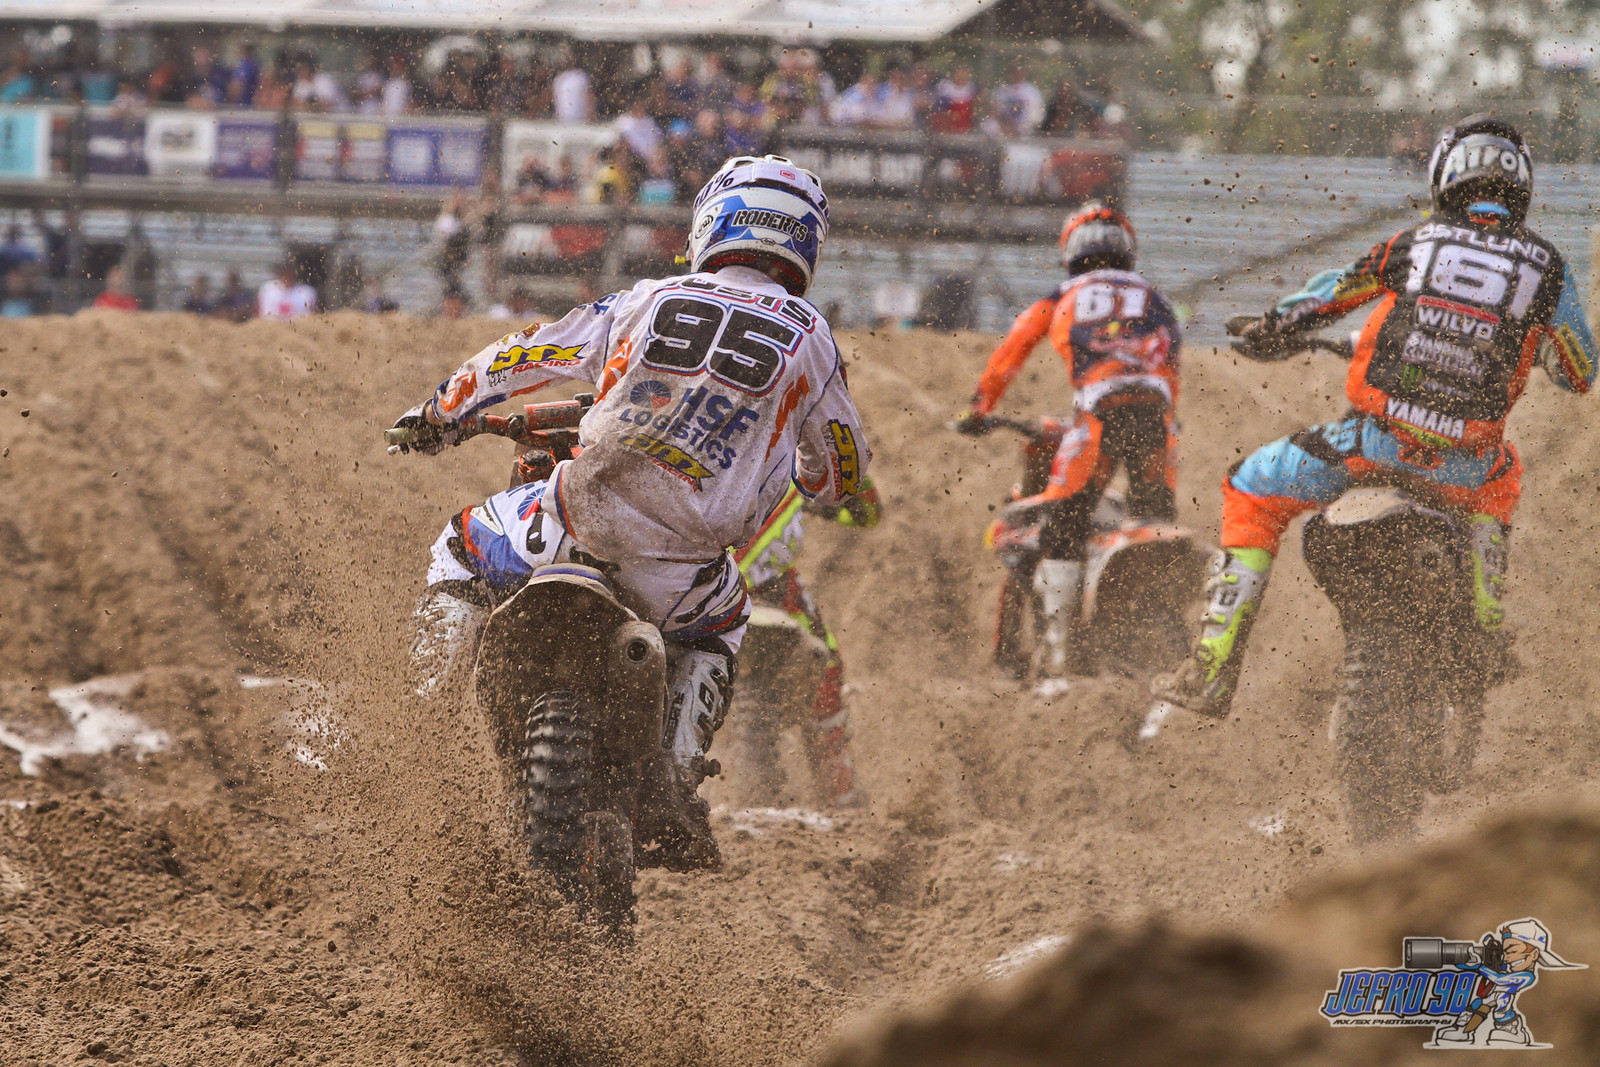 Robert Justs - Photo Gallery: MXGP of the Netherlands - Motocross Pictures - Vital MX